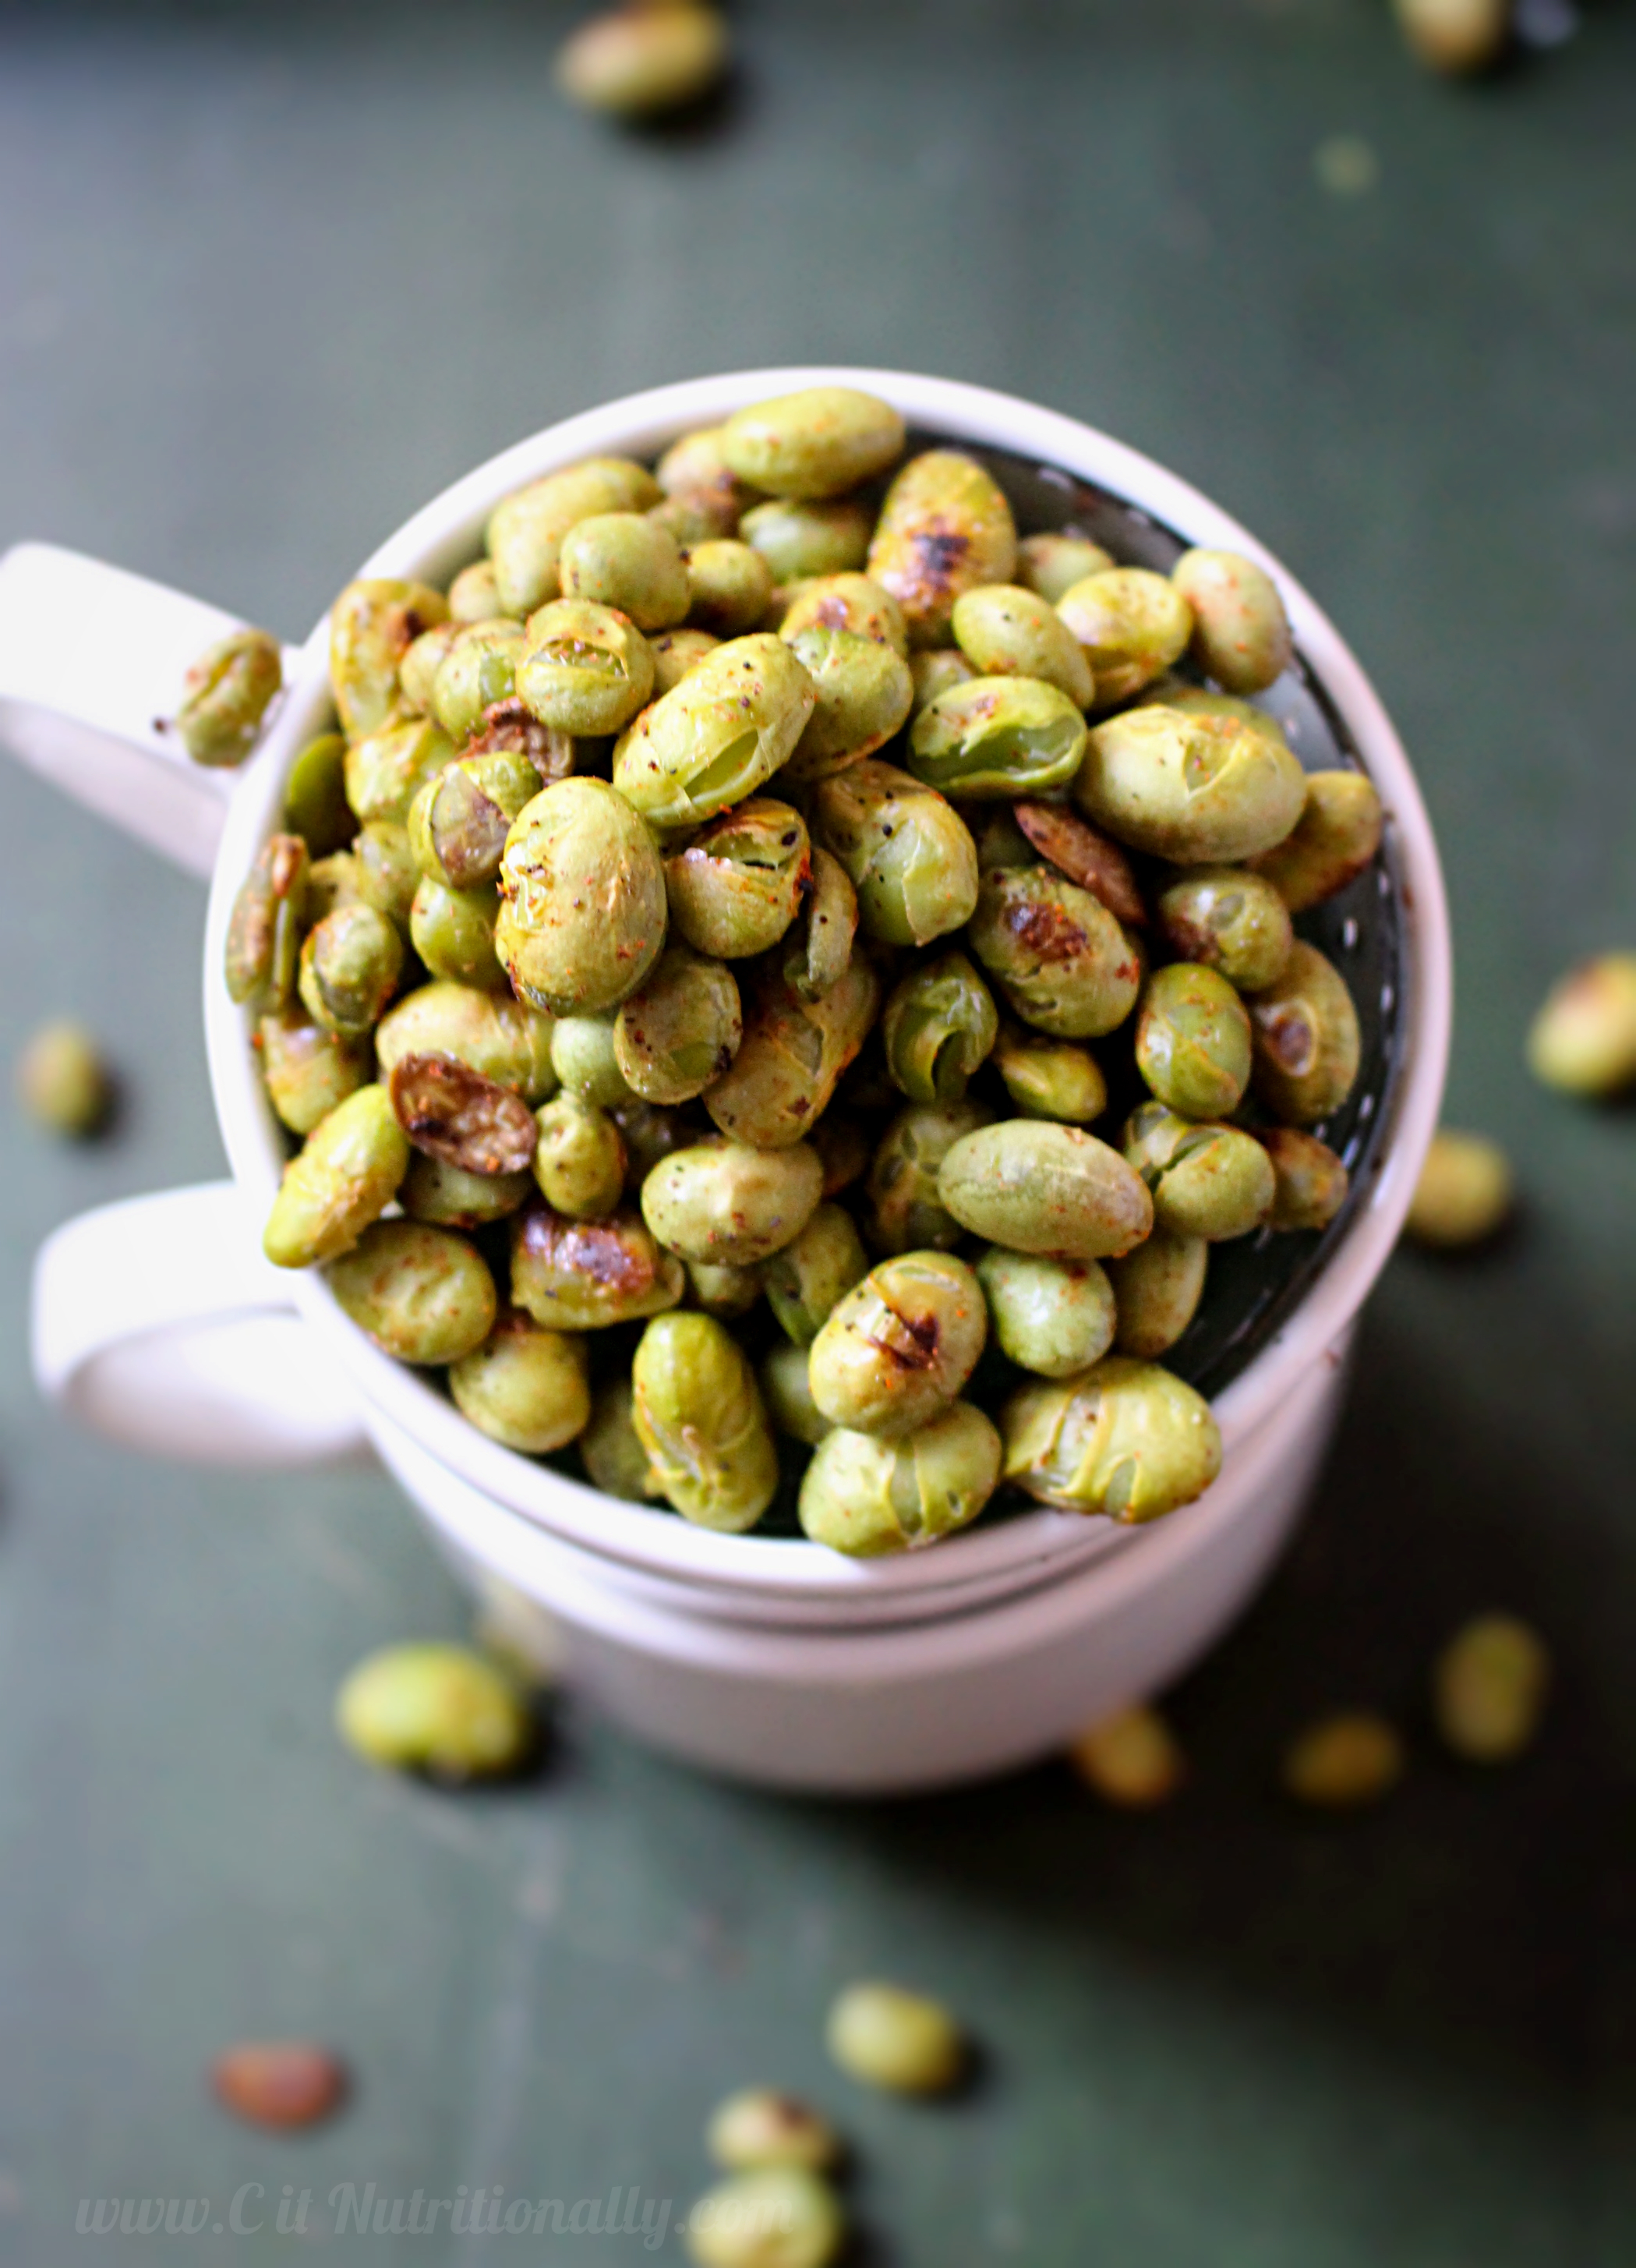 Crispy Roasted Edamame | C it Nutritionally #glutenfree #grainfree #vegan